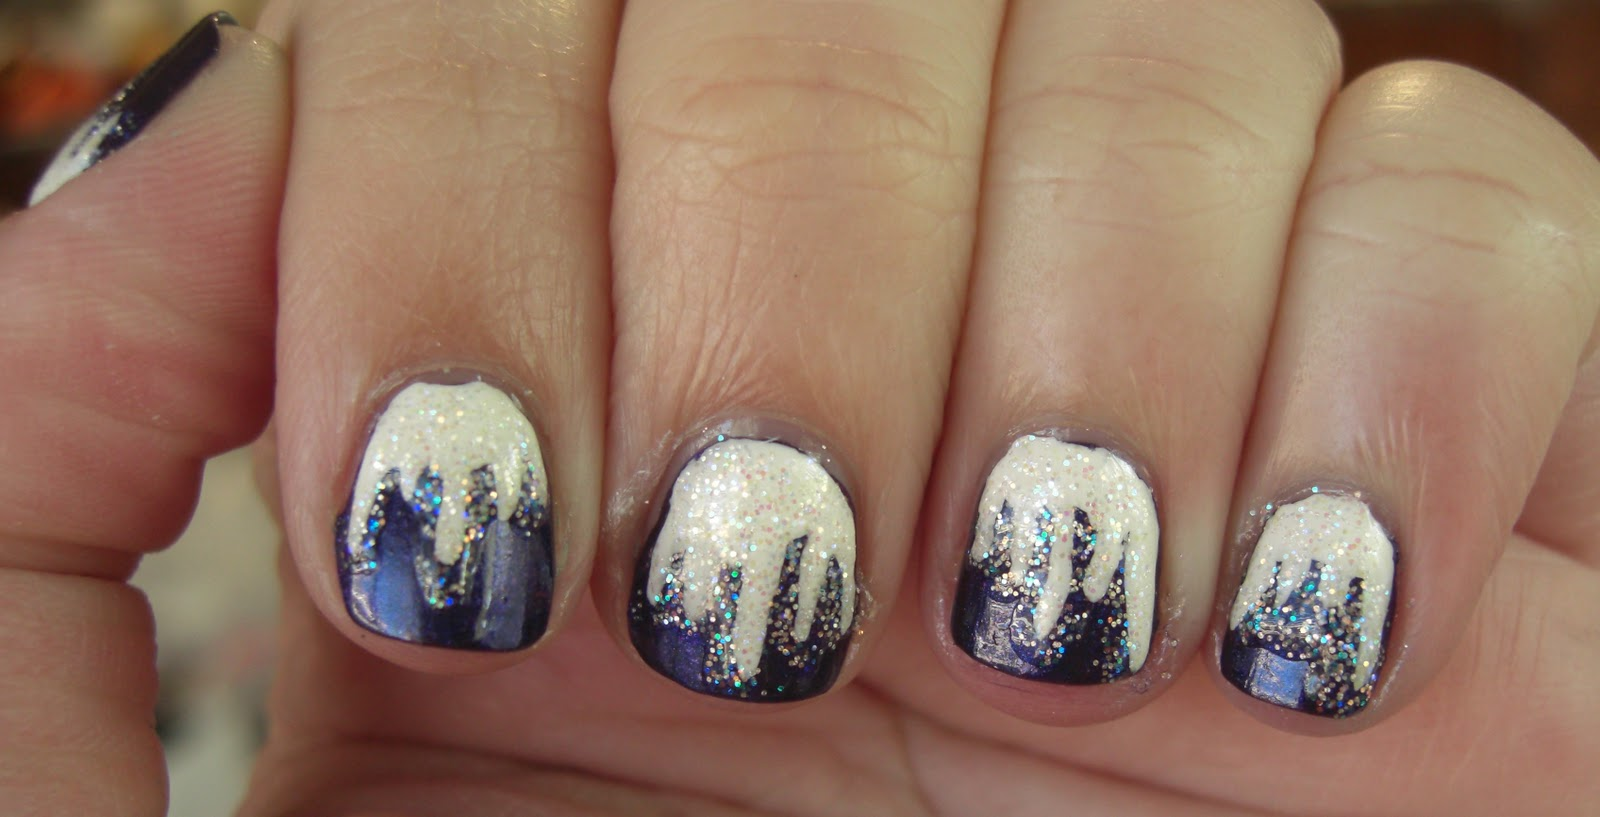 glitter obsession: Day 3 - Icicles